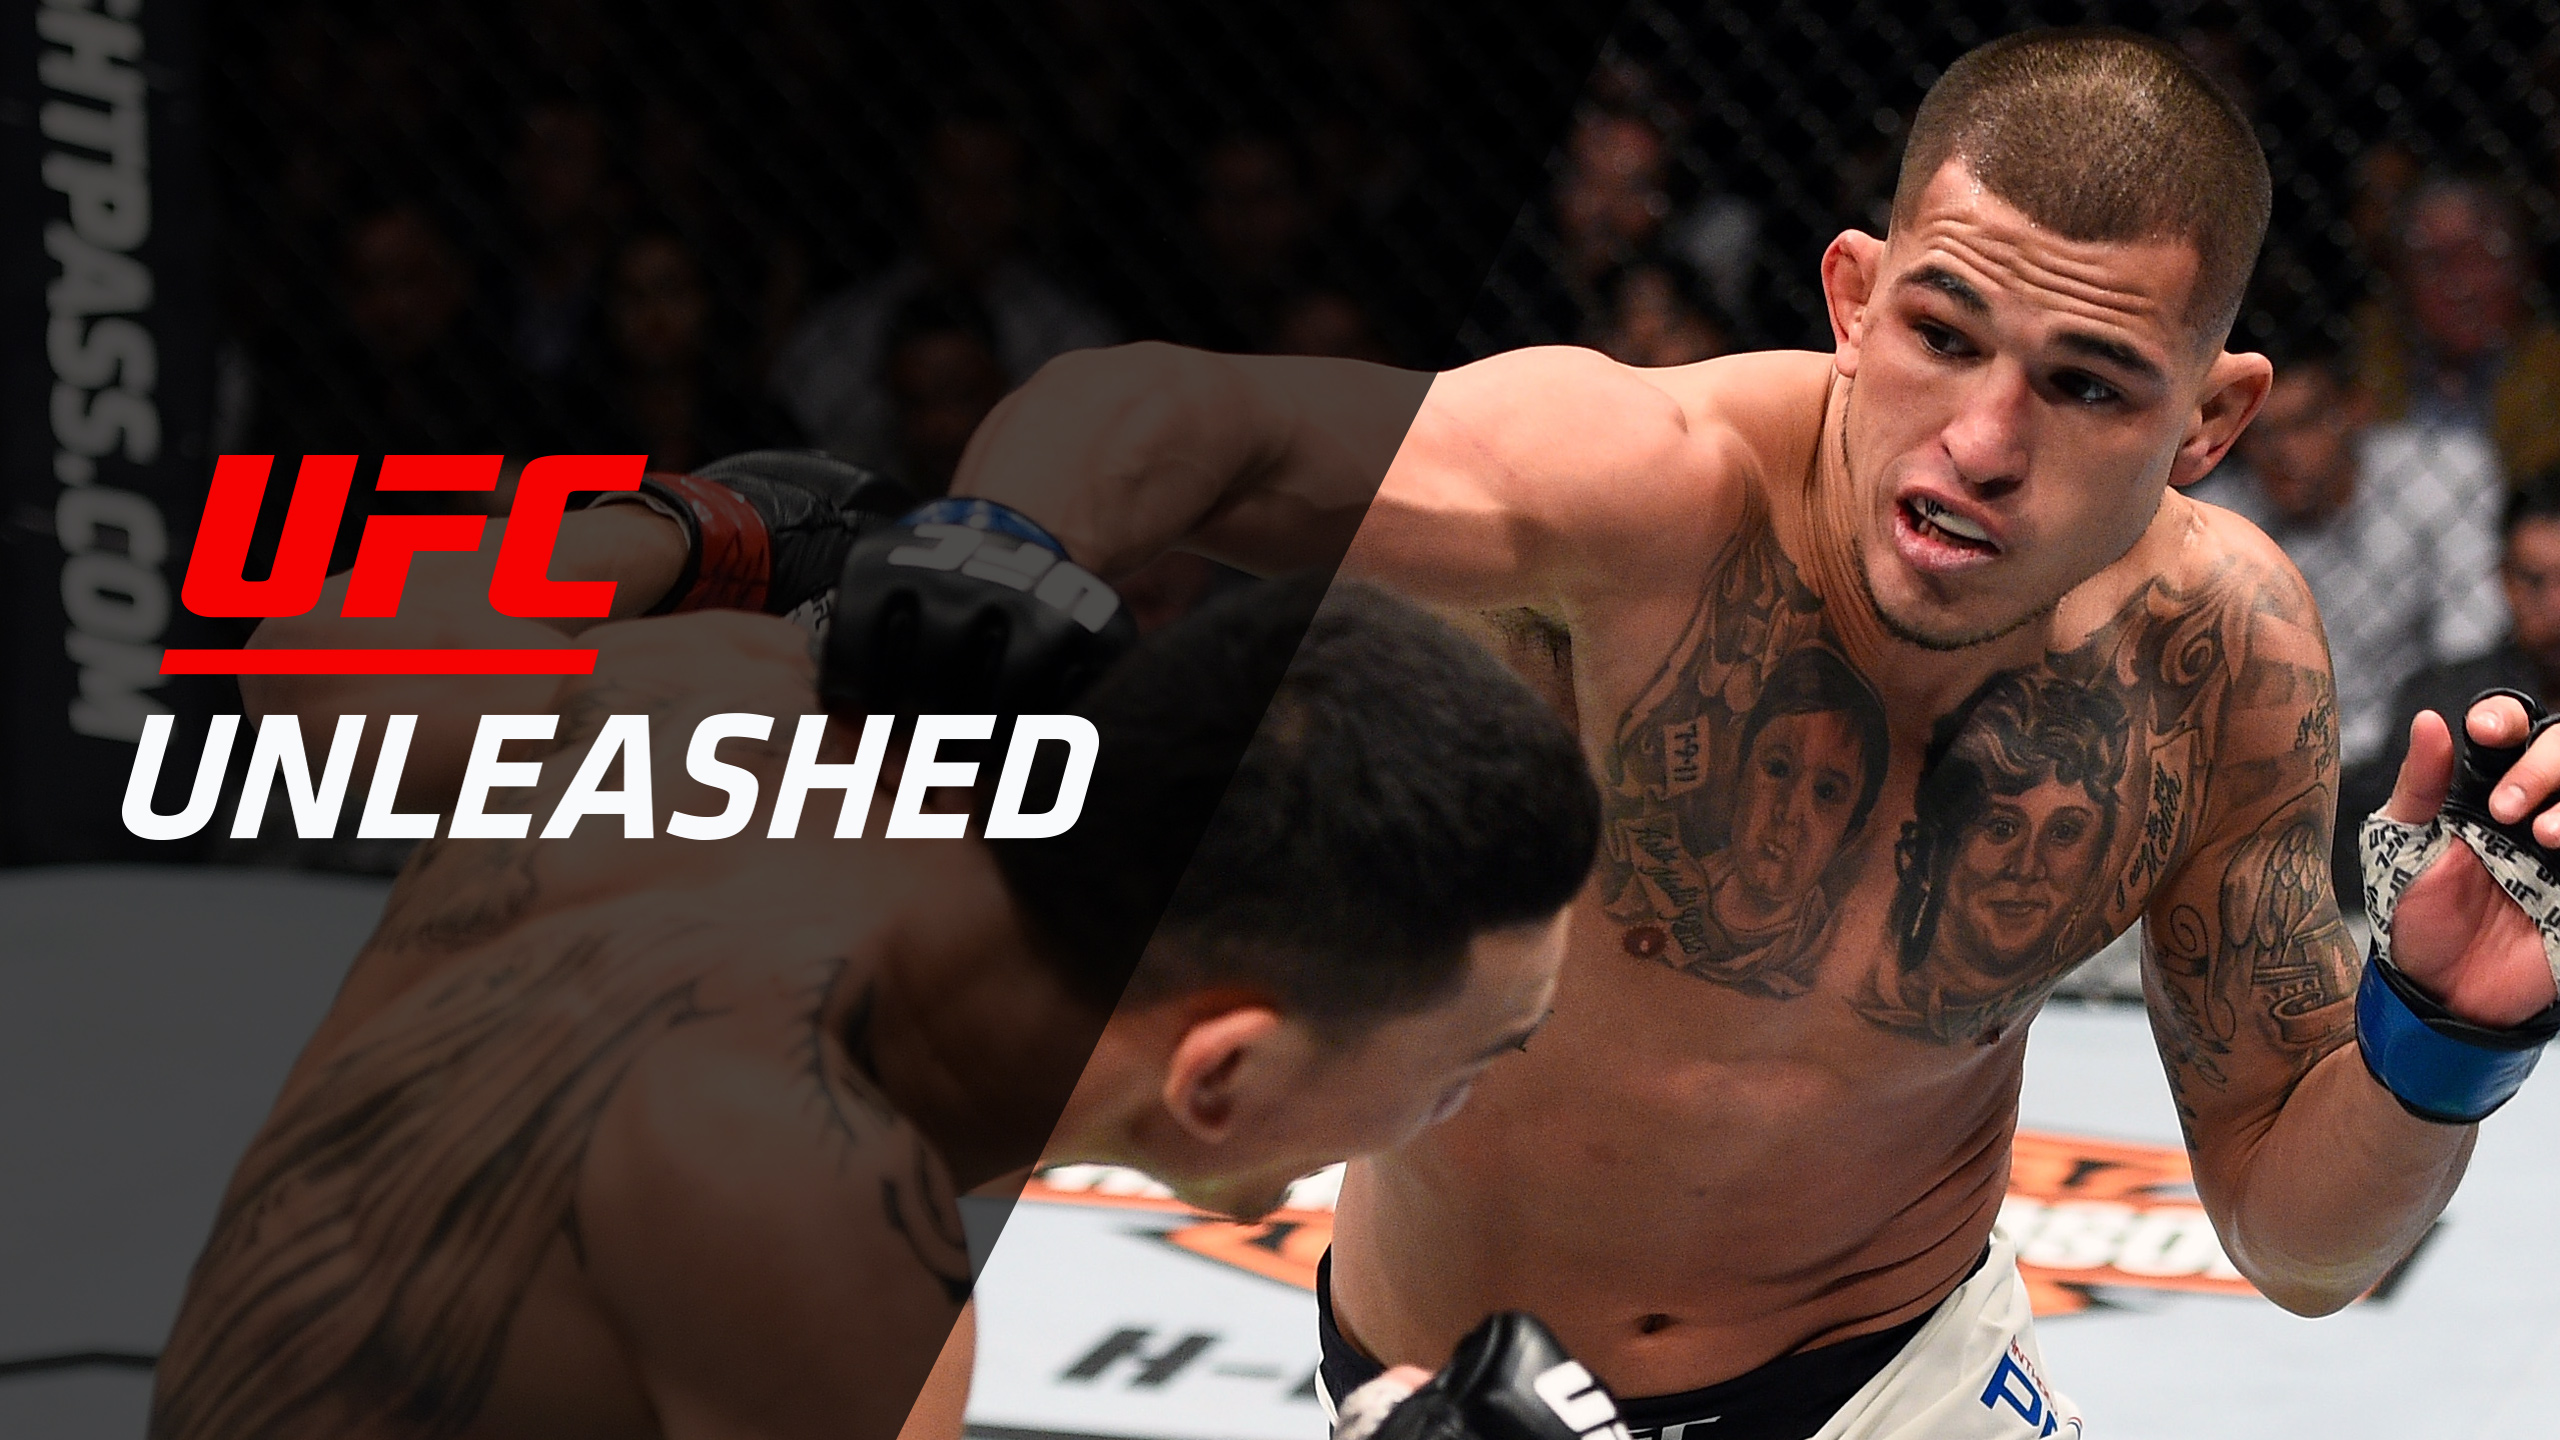 UFC Unleashed: The Best of Anthony Pettis